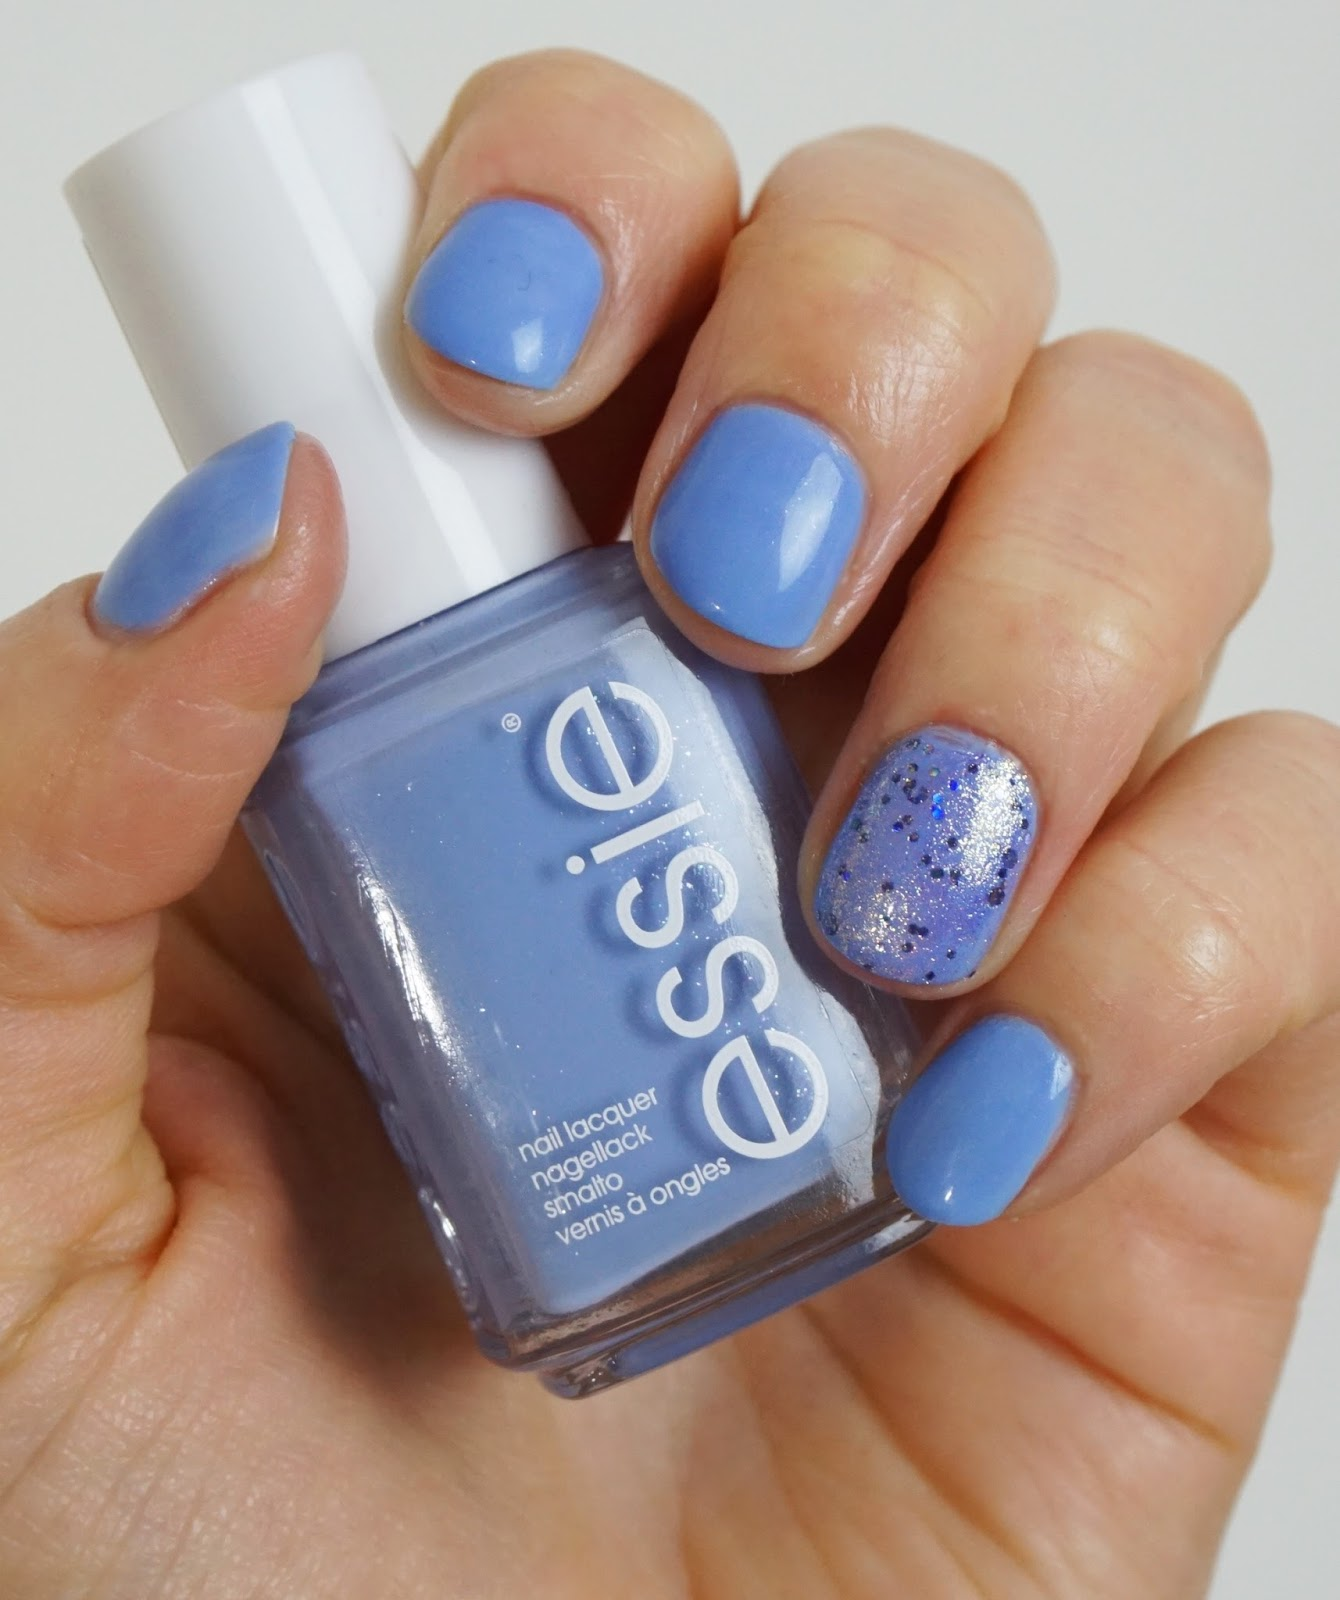 Essie - bikini so teeny Nagellack